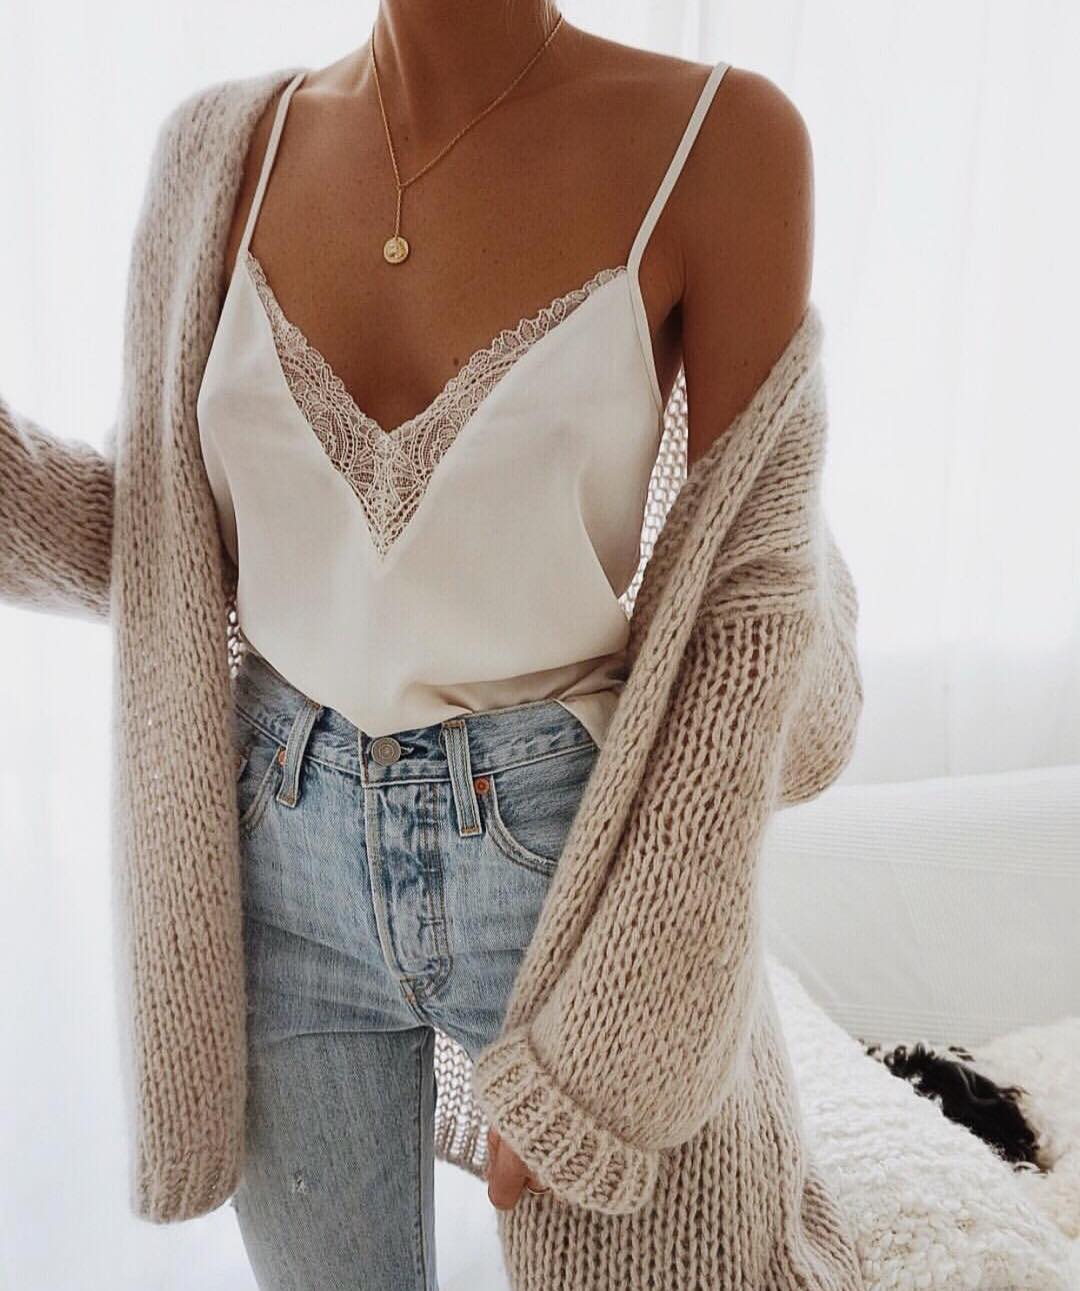 White Slip Tank Top With Lace Detailing With Beige Cardigan and Wash Jeans 2020